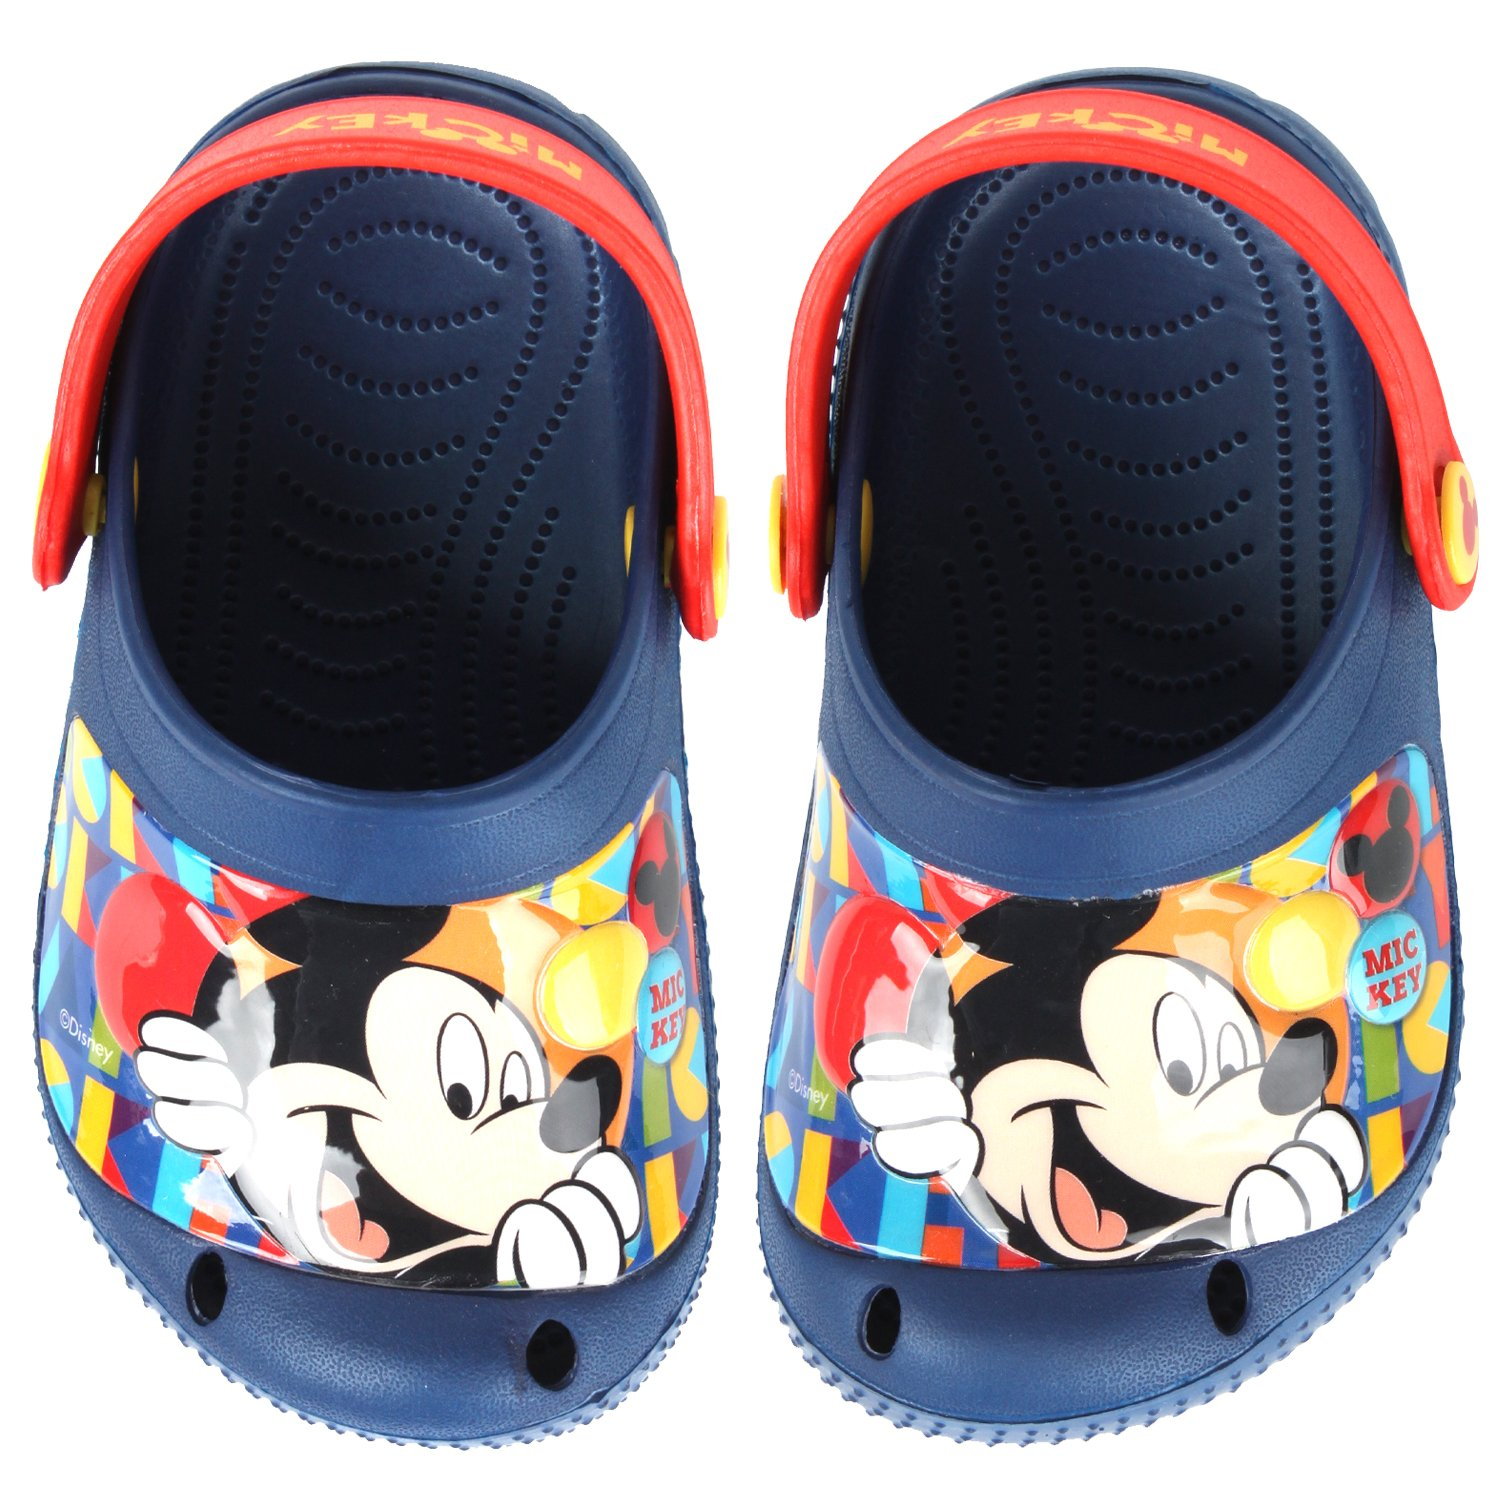 Joah Store Mickey Mouse Prism Boy's Blue EVA Sandals (Parallel Import/Generic Product) (7 M US Toddler)